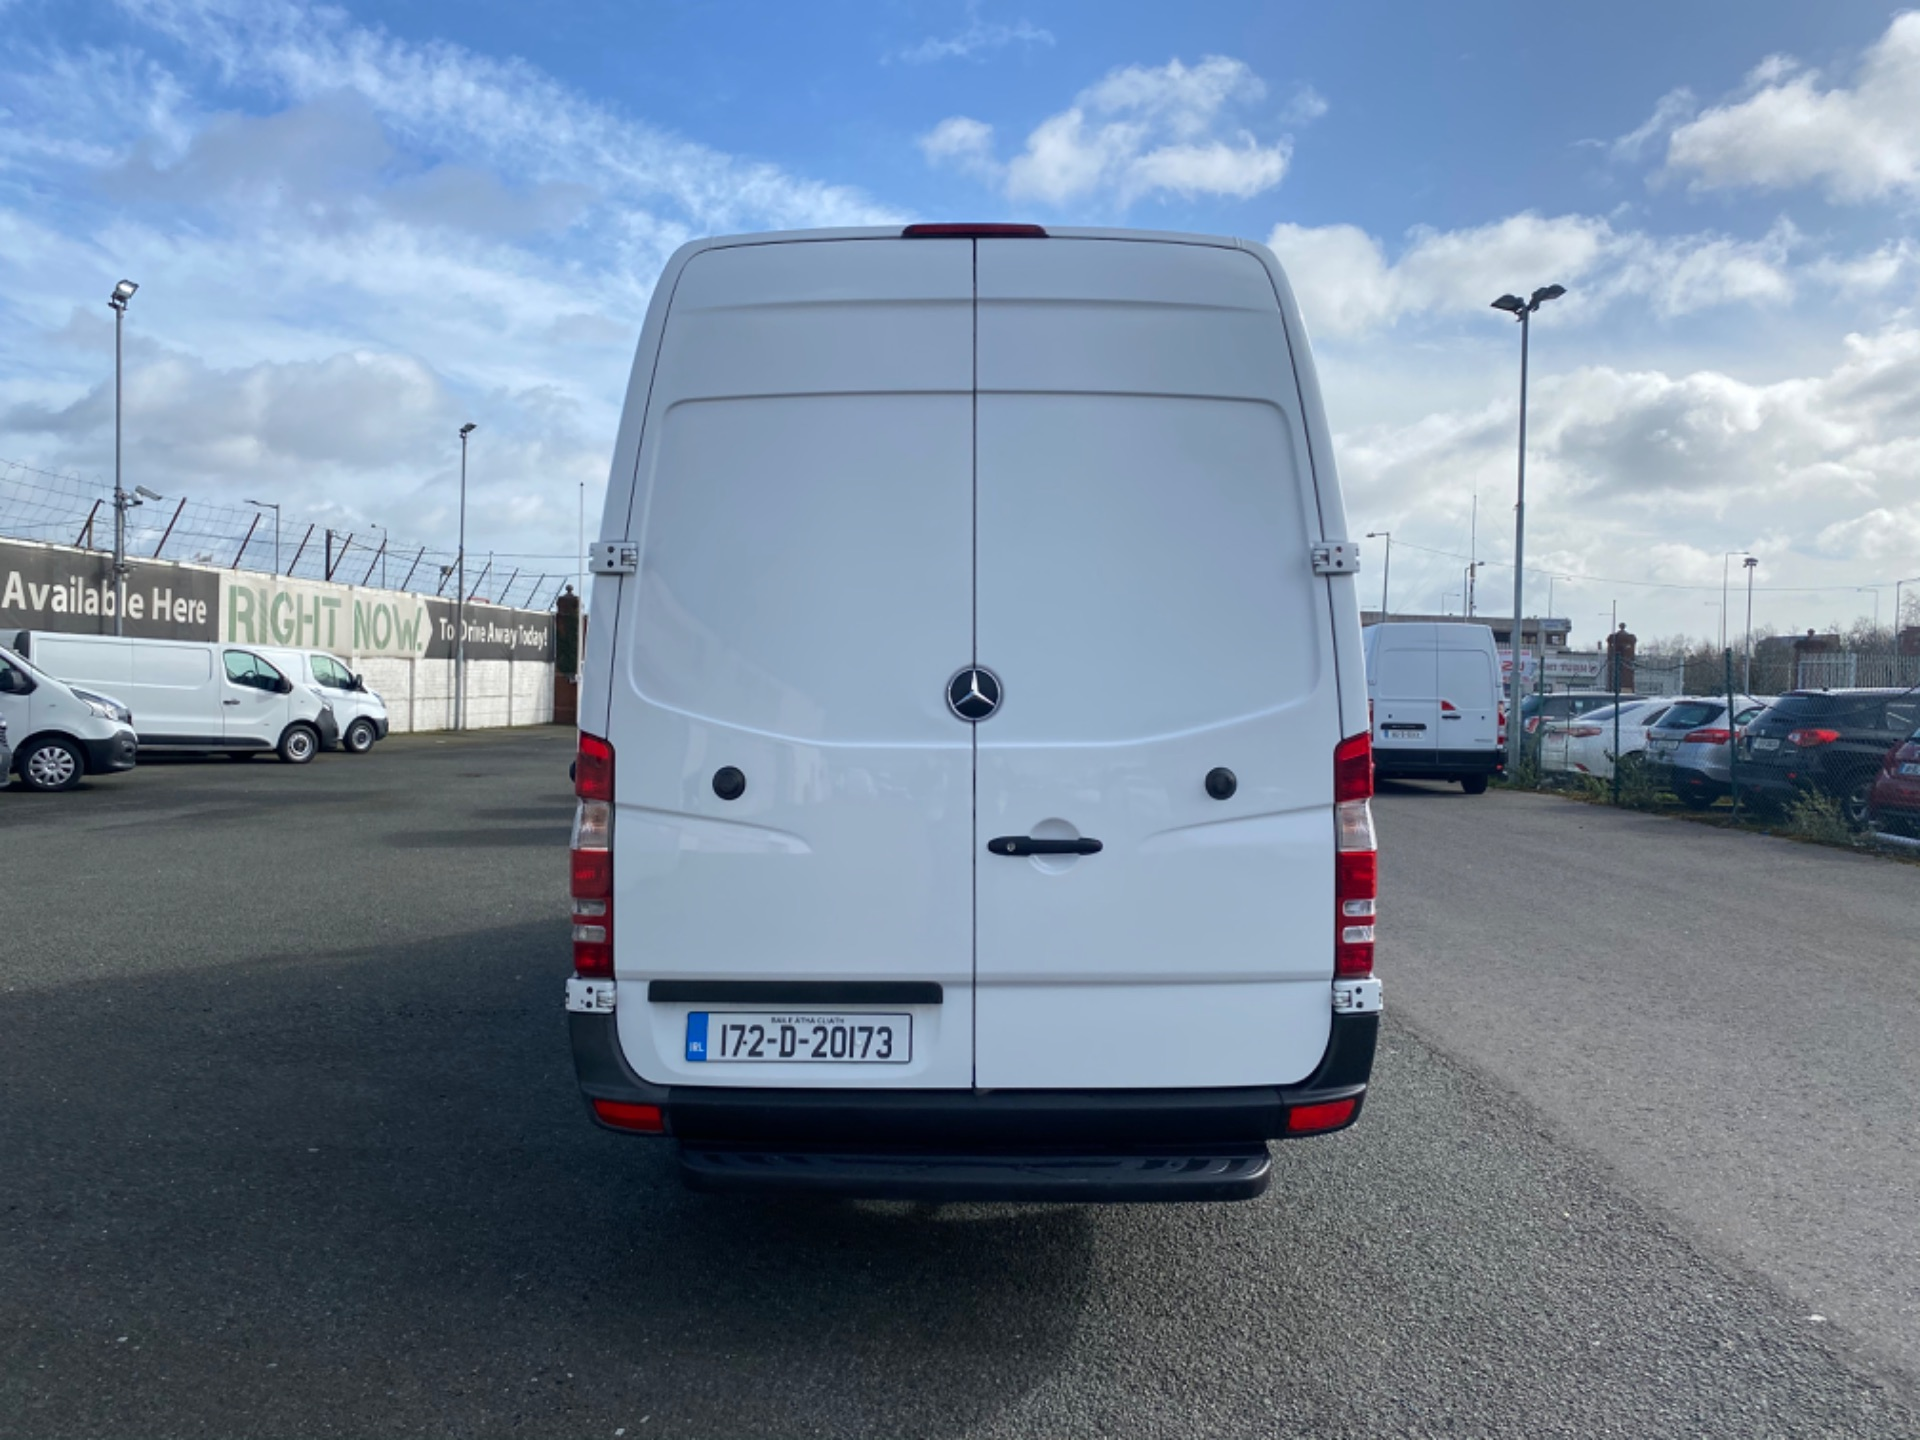 2017 Mercedes-Benz Sprinter 314/43 EU6 6DR (172D20173) Thumbnail 6